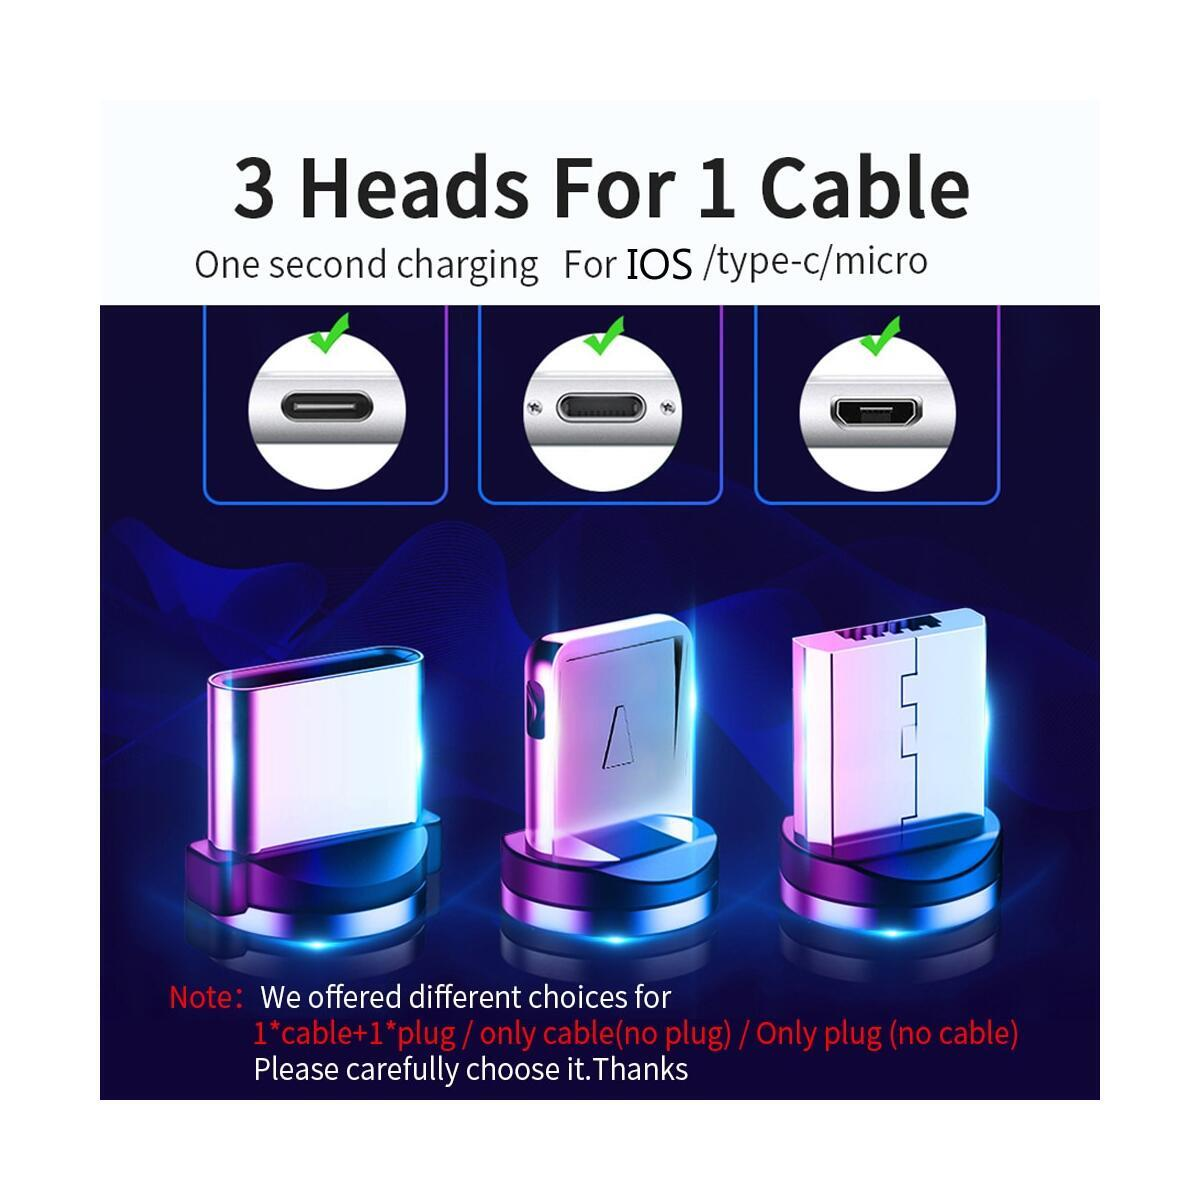 3 in 1 Magnetic Charging Cable,3A Fast Charging Nylon Braided Cord, Support Data Trasfer, Universal Magnet Phone Charger with Micro-USB Type-C i0S Device, iPhone and Android  (Black, 1Pack-3.3ft)